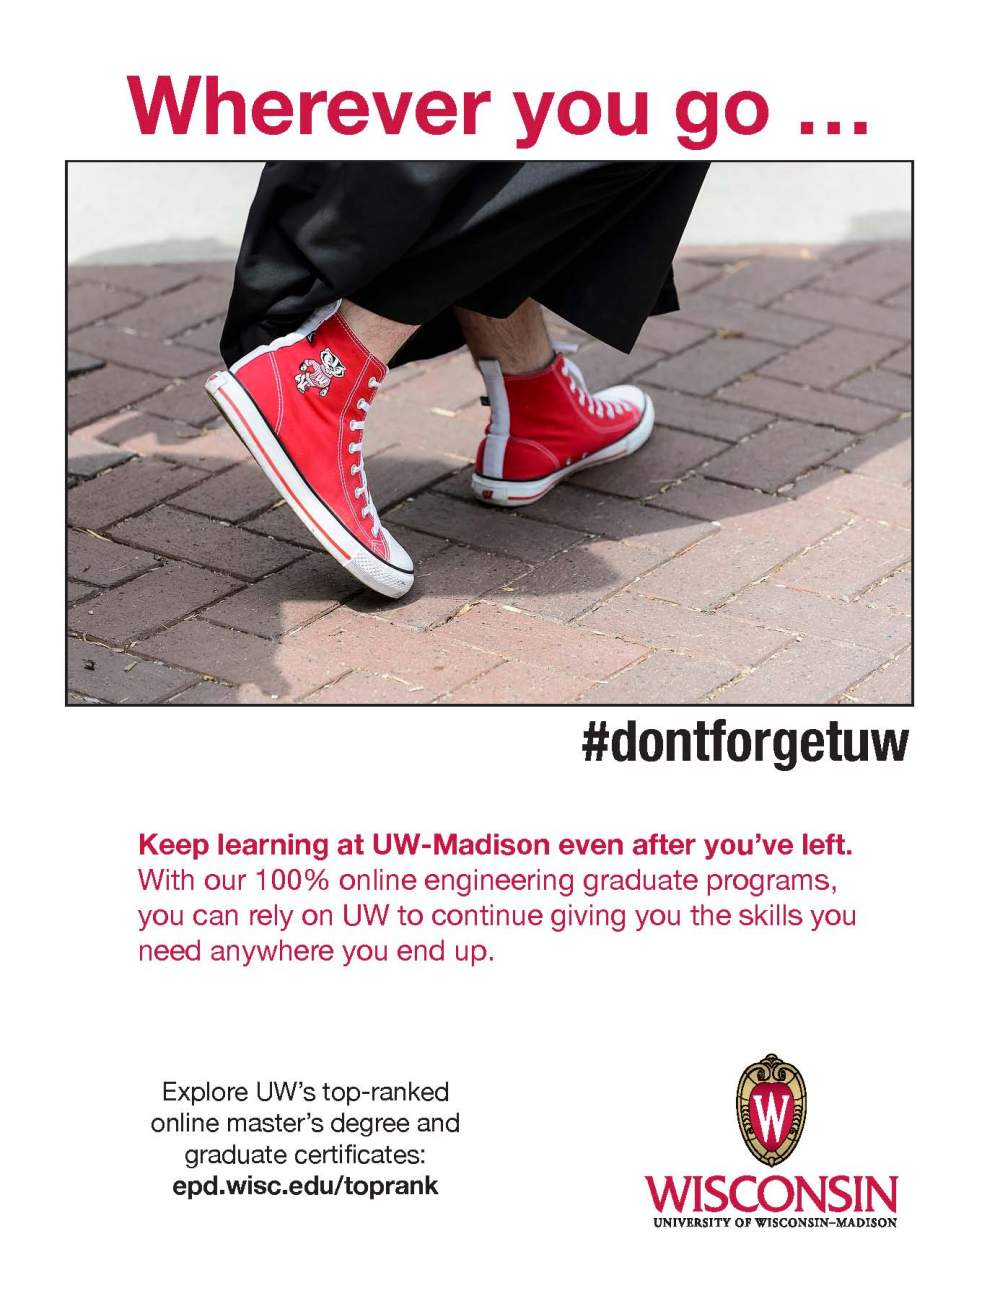 A shot of a UW-Madison graduate's red sneakers with Bucky Badger on them.